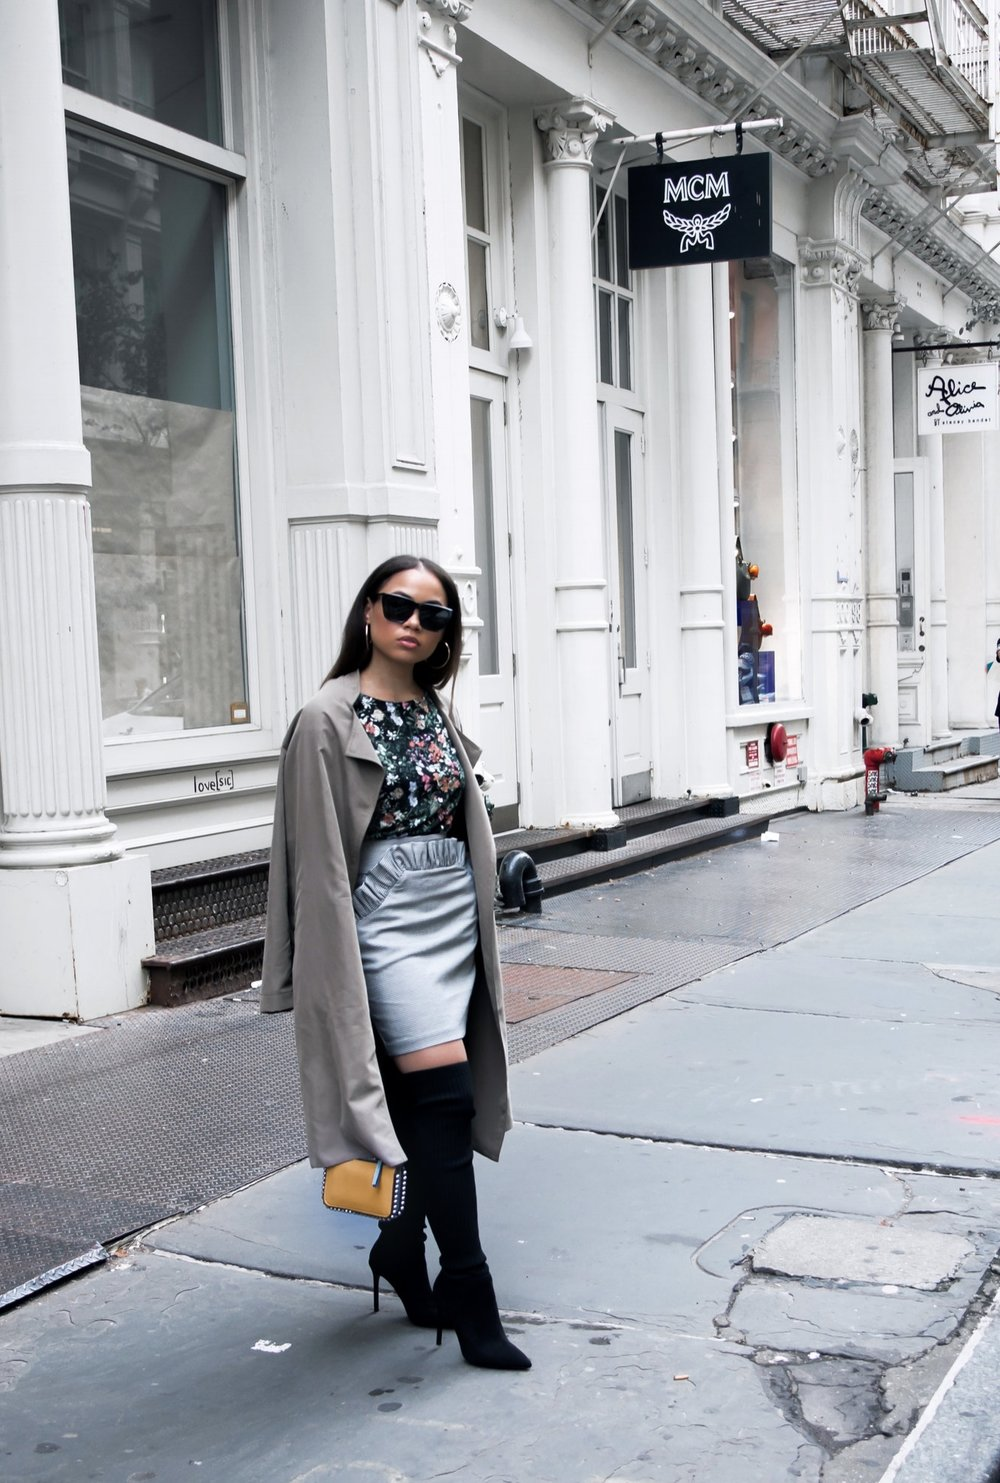 FALL FLORALS THIGH HIGH BLACK BOOTS ZARA H&M AMERICAN APPAREL DUSTER COAT GIVENCHY BLACK SUNGLASSES